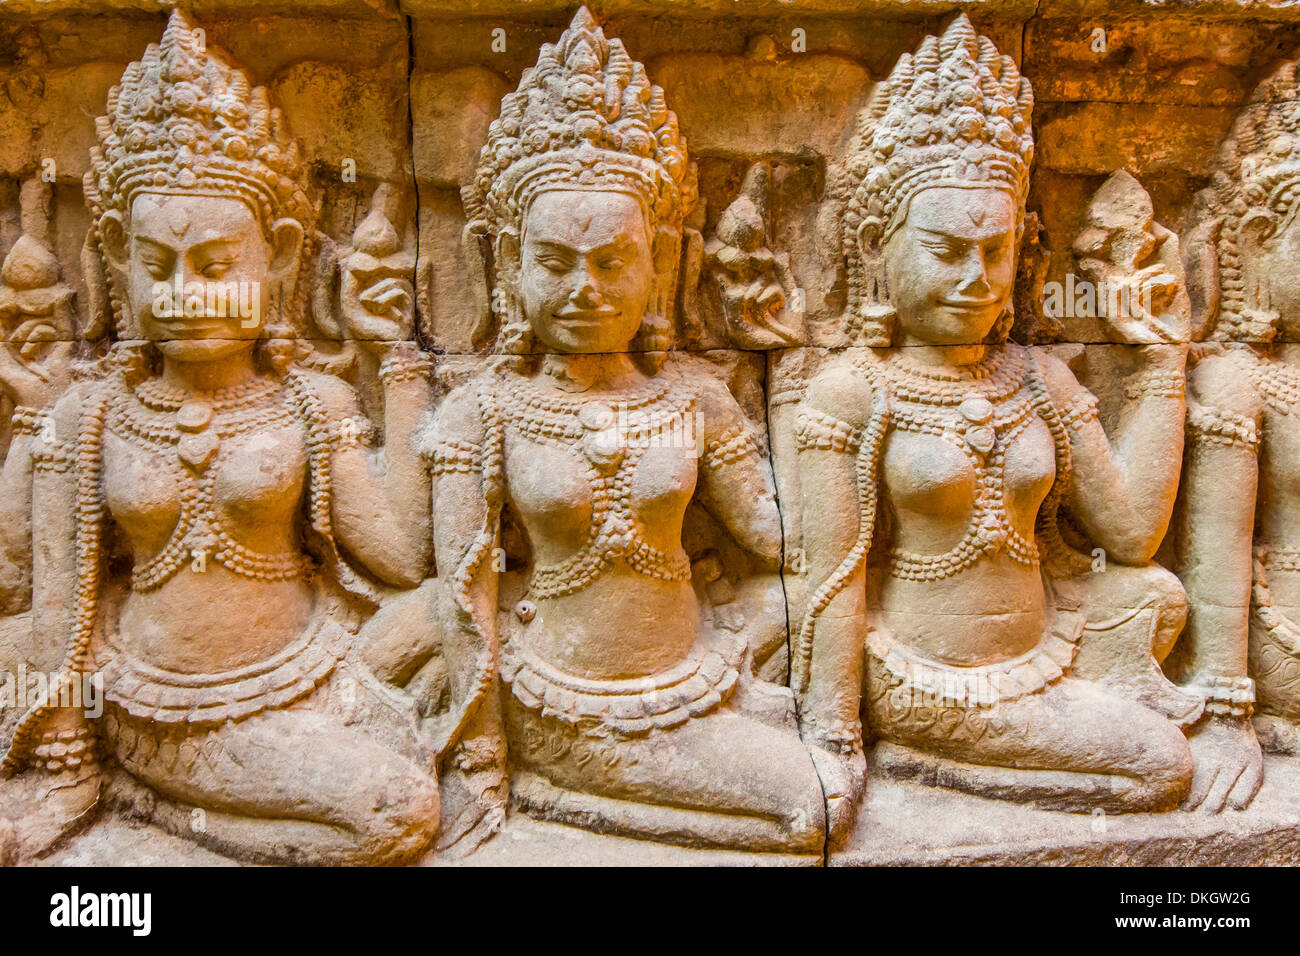 Apsara carvings in the Leper King Terrace in Angkor Thom, Angkor, UNESCO World Heritage Site, Siem Reap Province, Cambodia - Stock Image